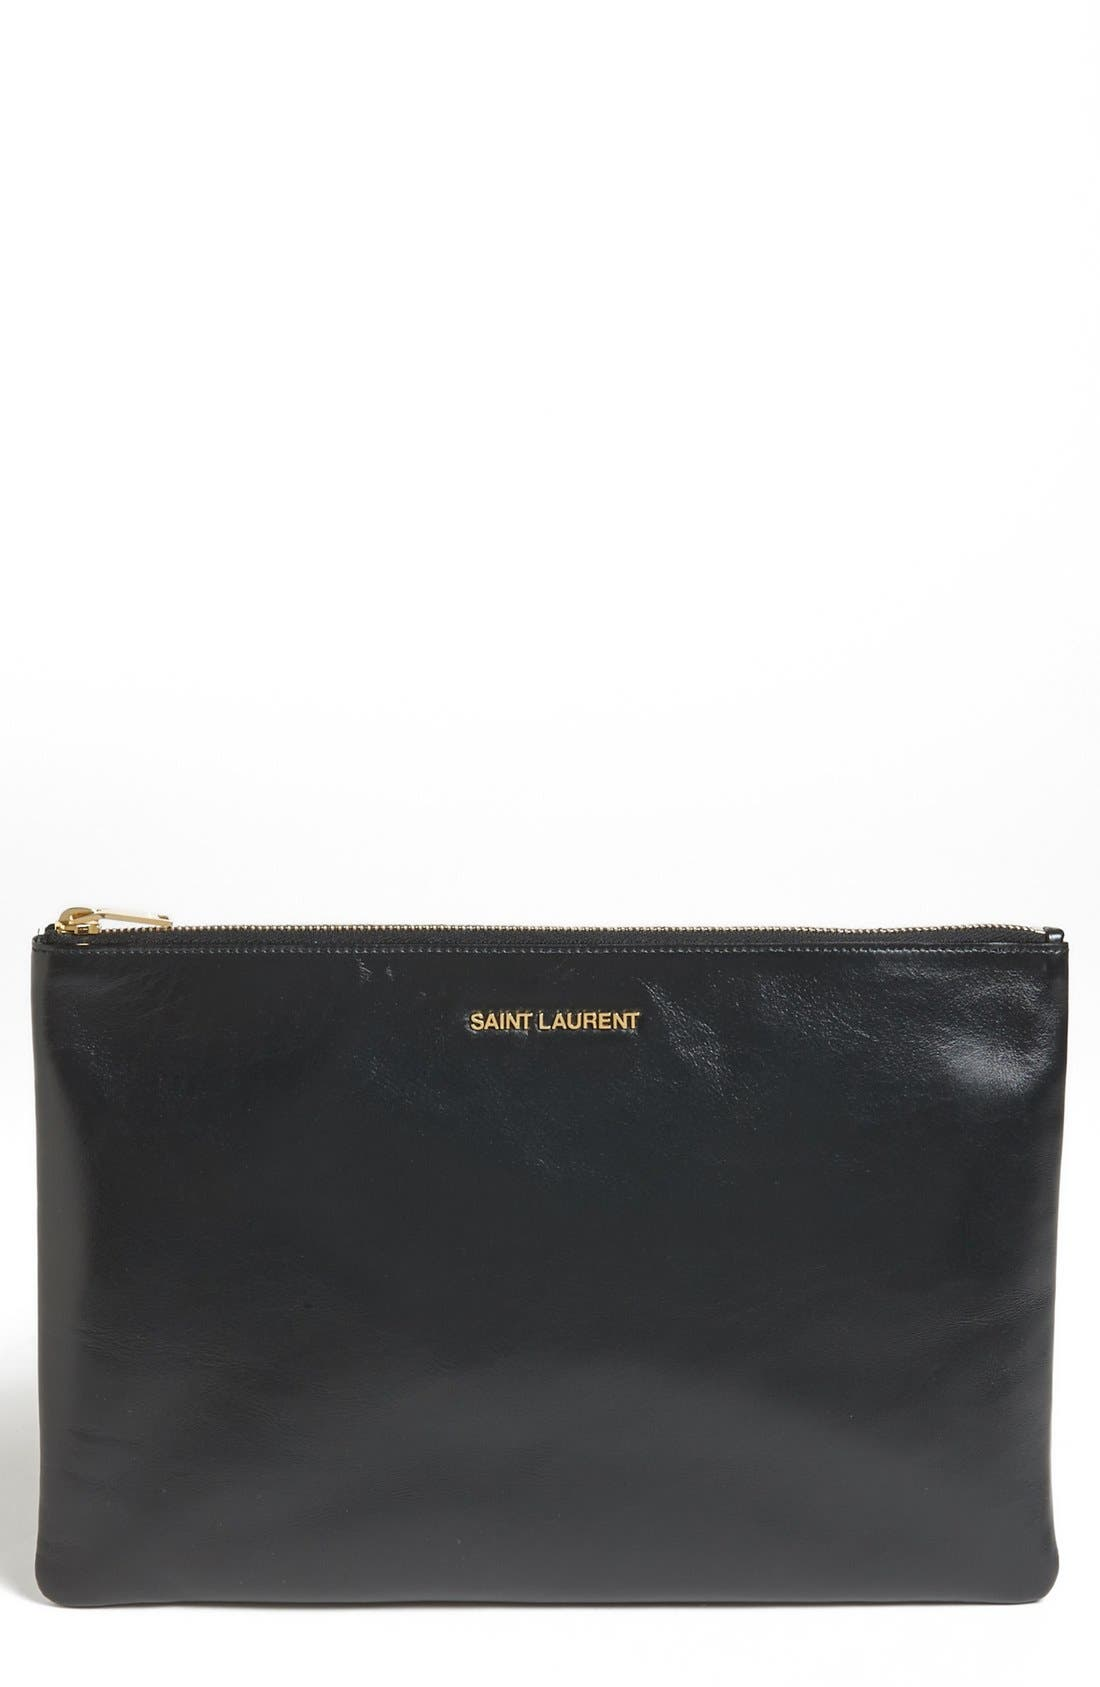 Alternate Image 1 Selected - Saint Laurent Leather Clutch